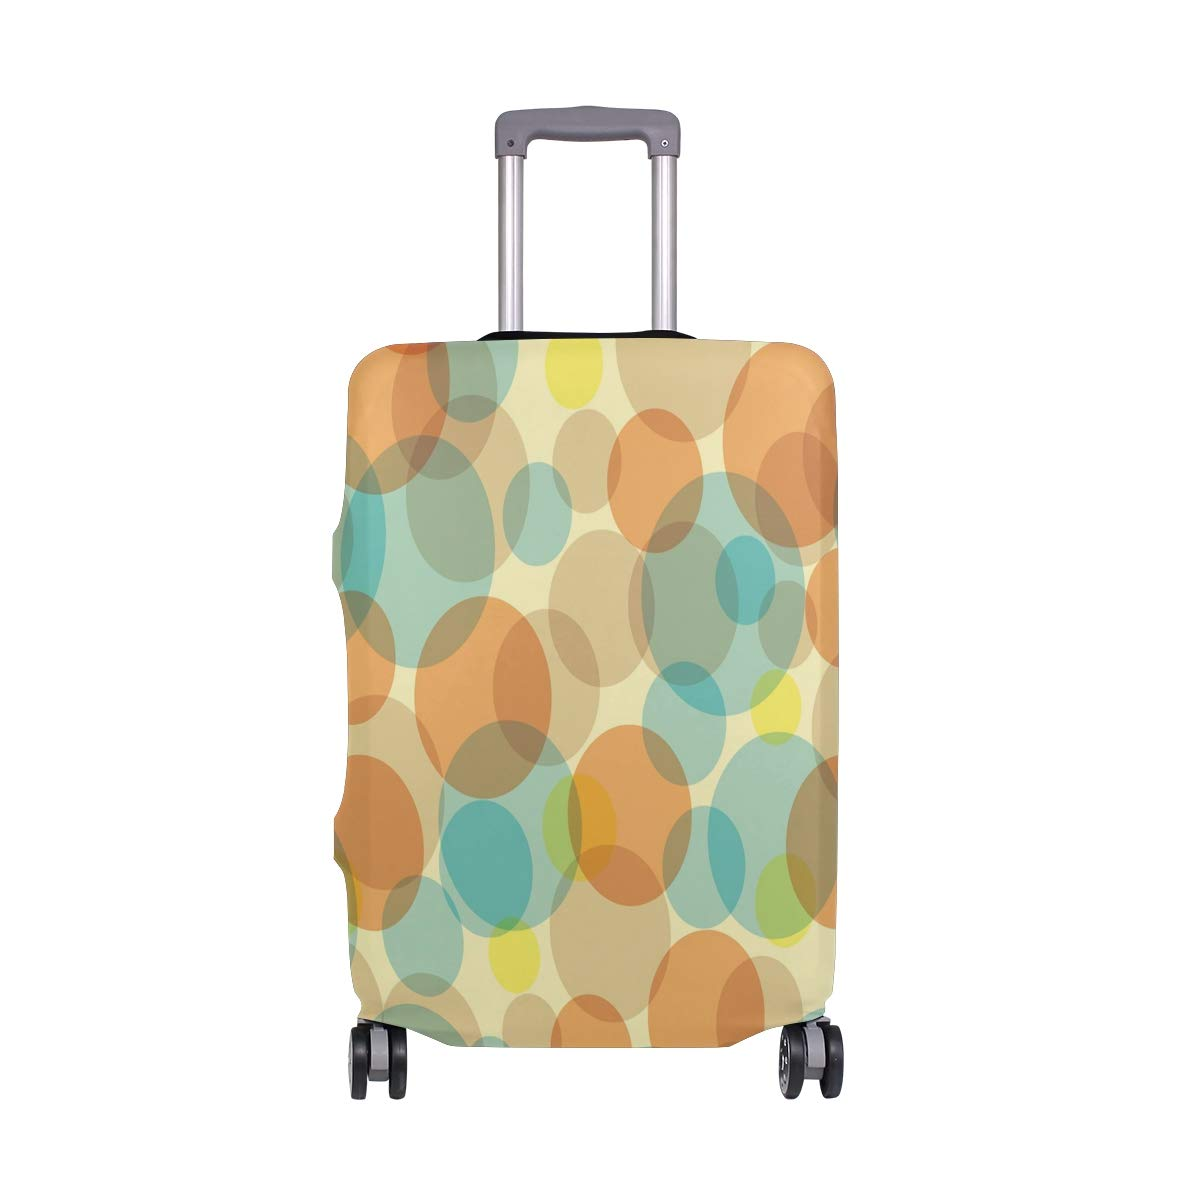 Baggage Covers Colorful Dot Pattern Art Abstract Washable Protective Case